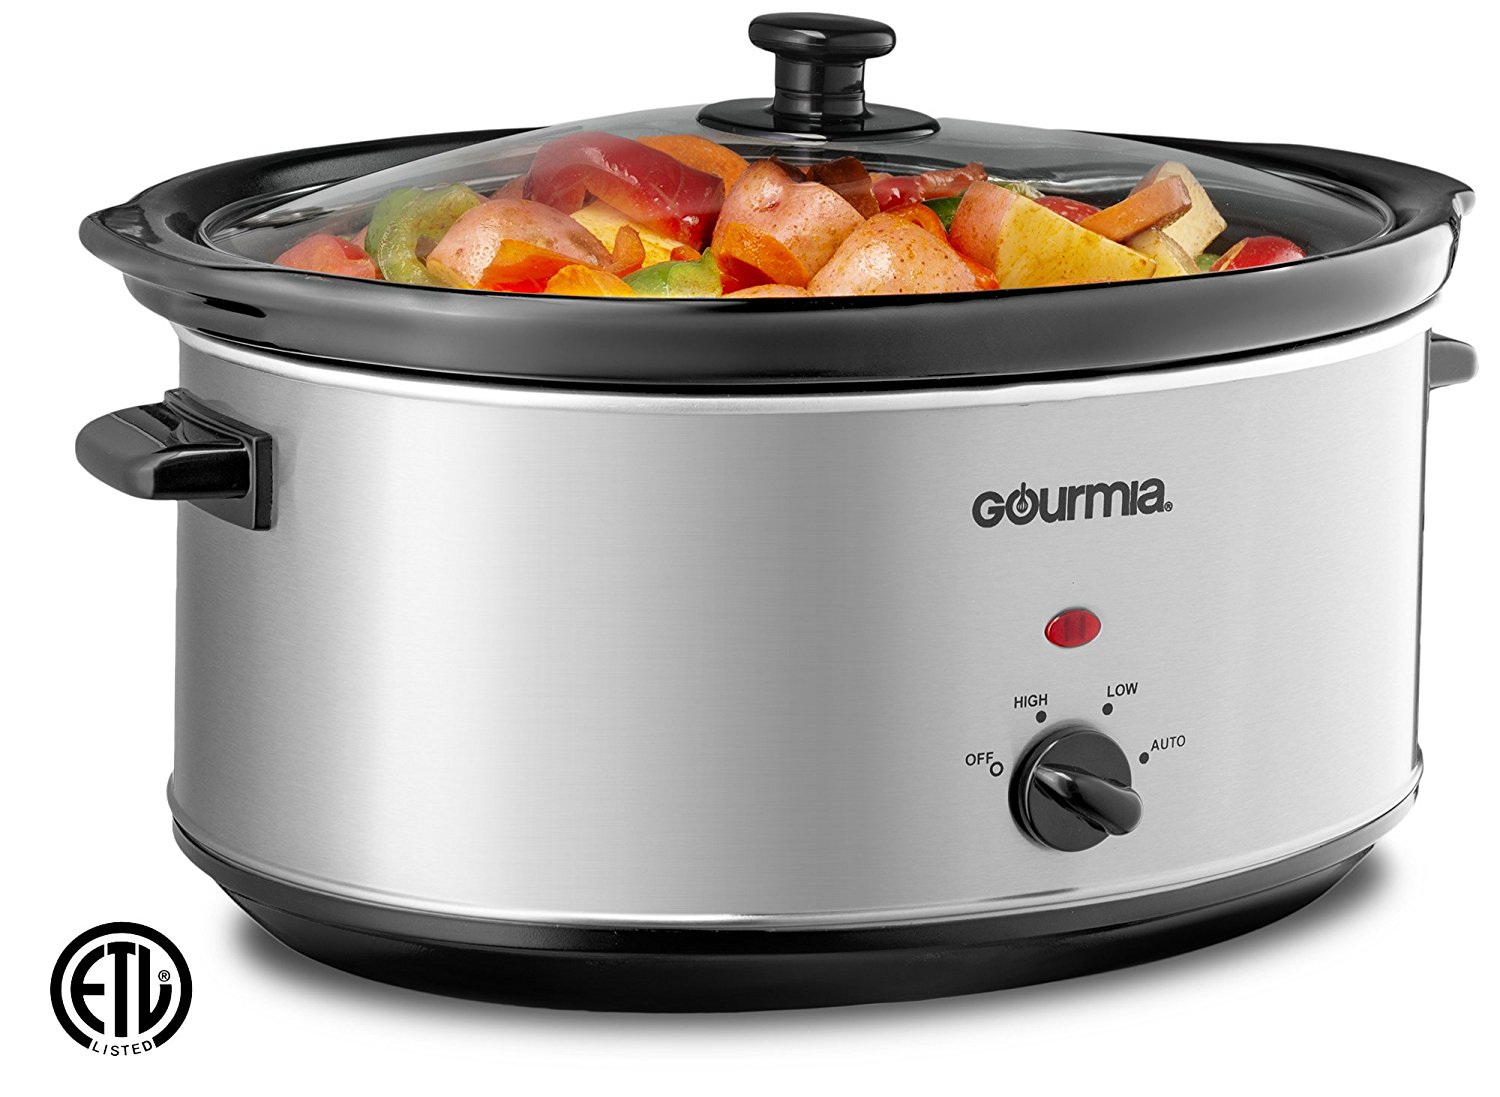 Gourmia PC710 Slow Cooker